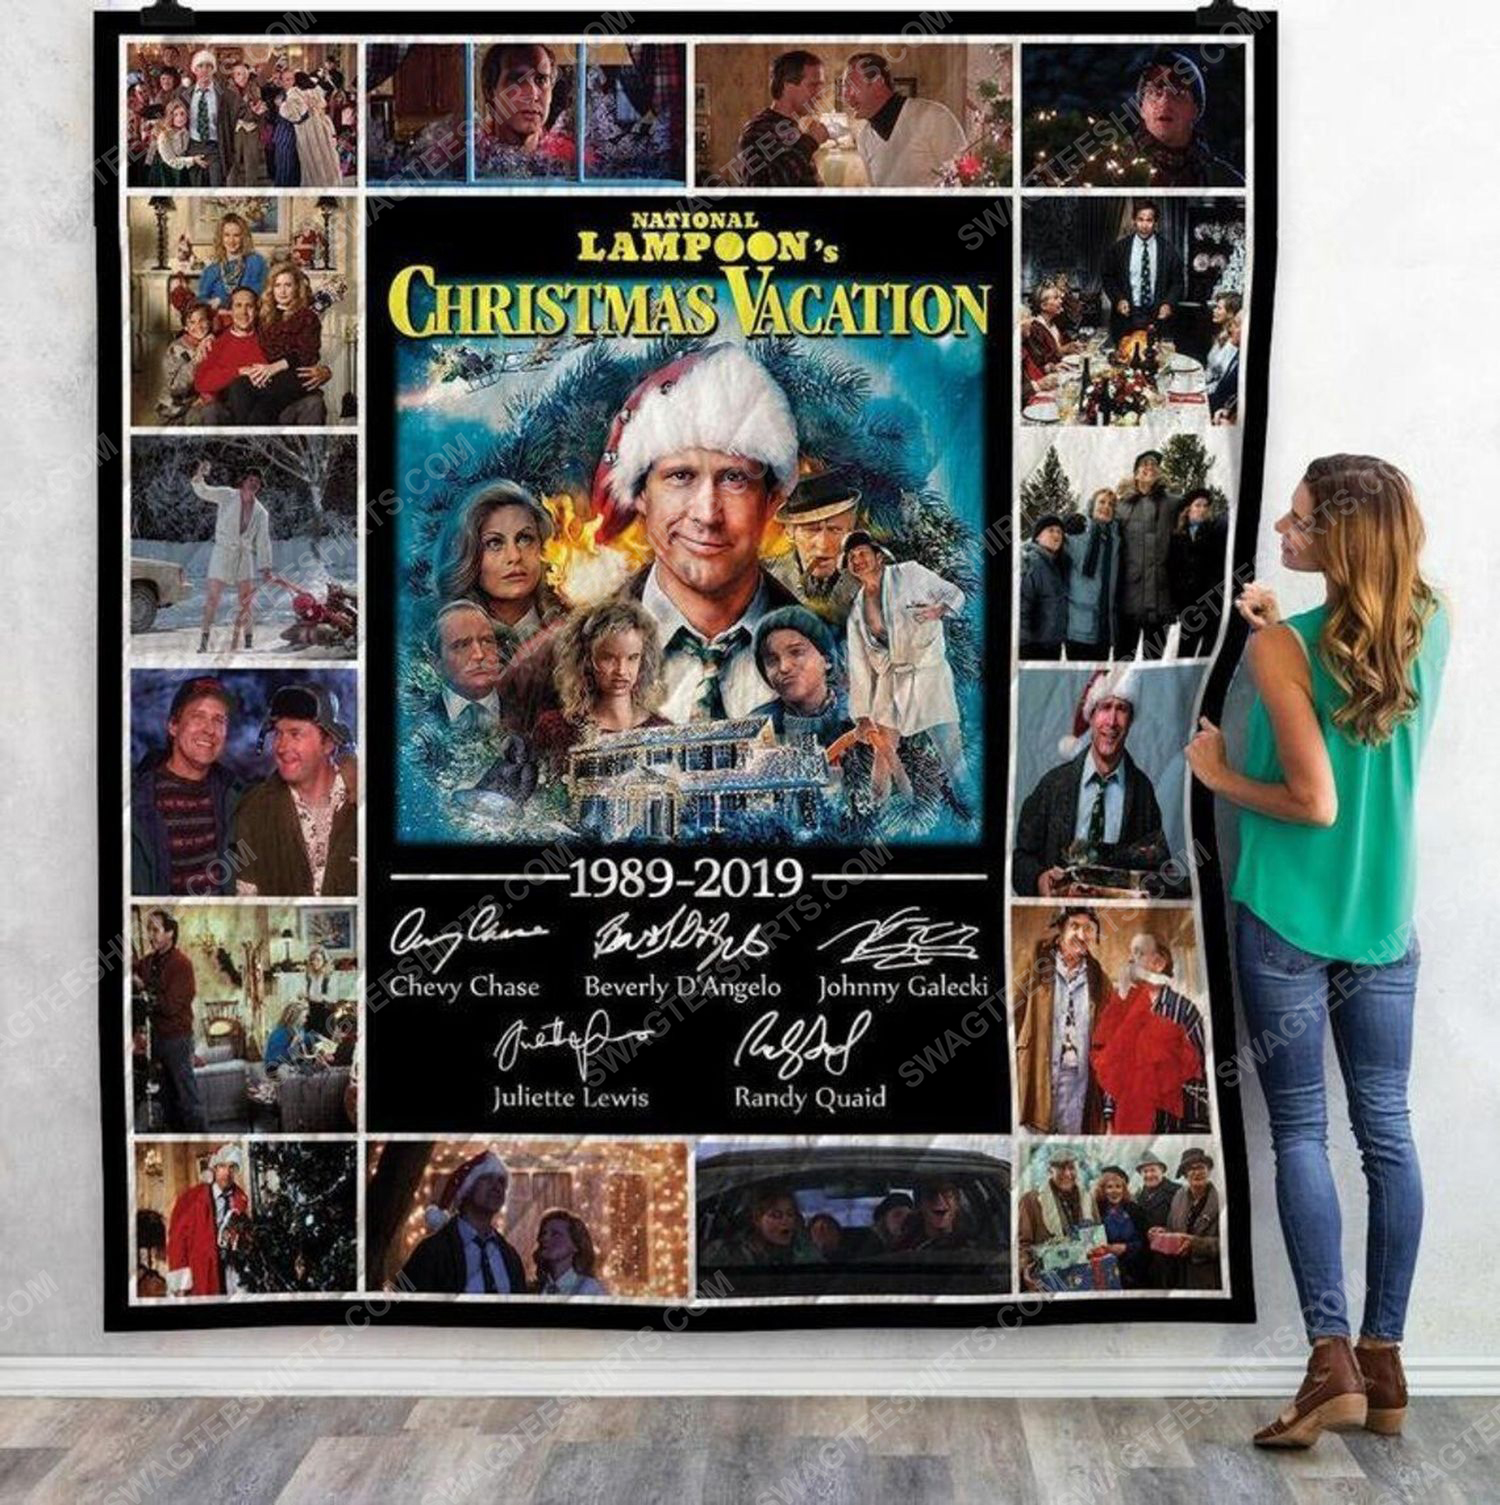 National lampoons christmas vacation blanket 2 - Copy (2)